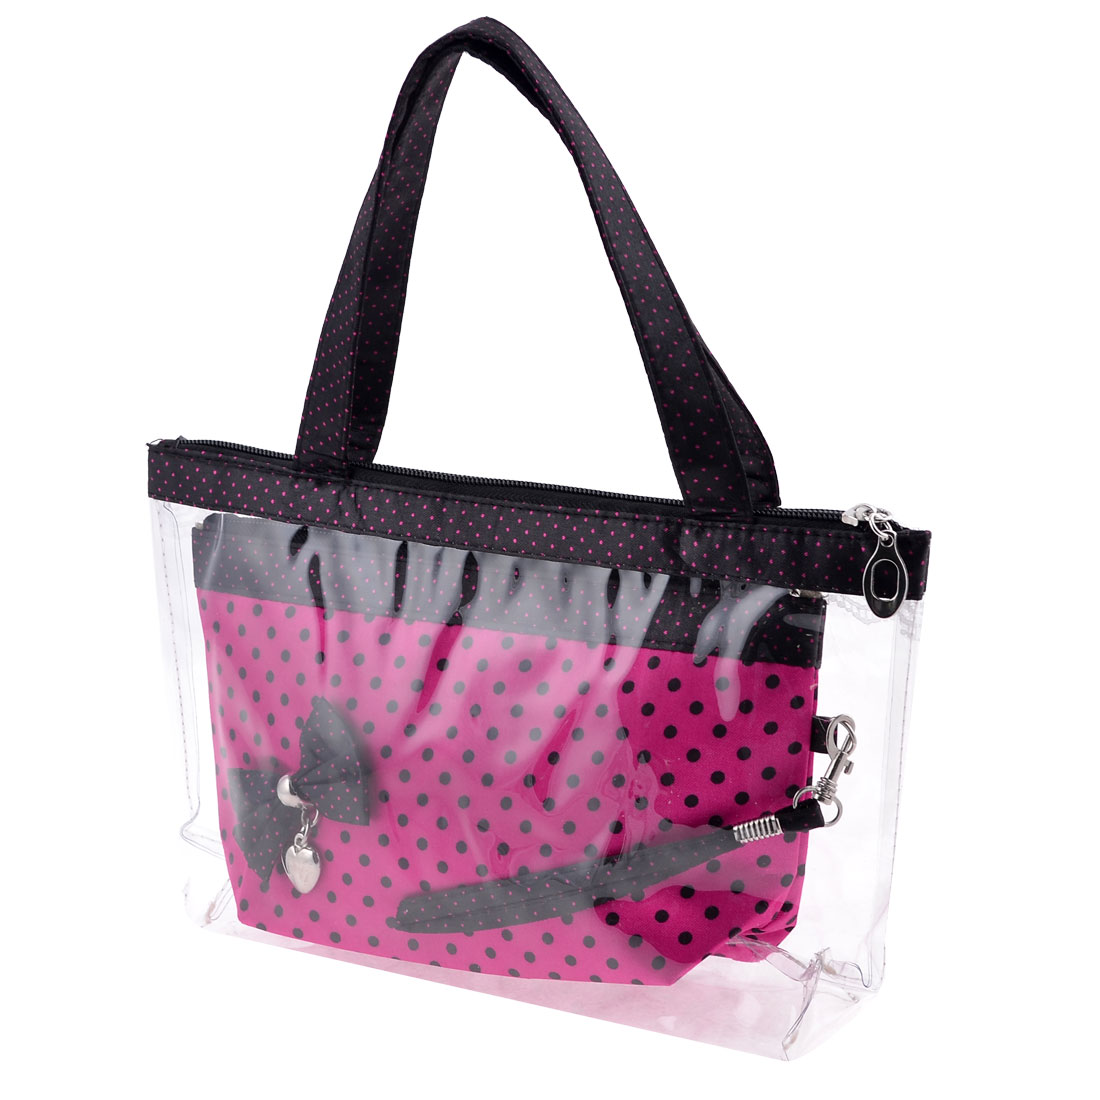 Plastic Nylon 2 in 1 Fuchsia Black Dots Pattern Makeup Bag